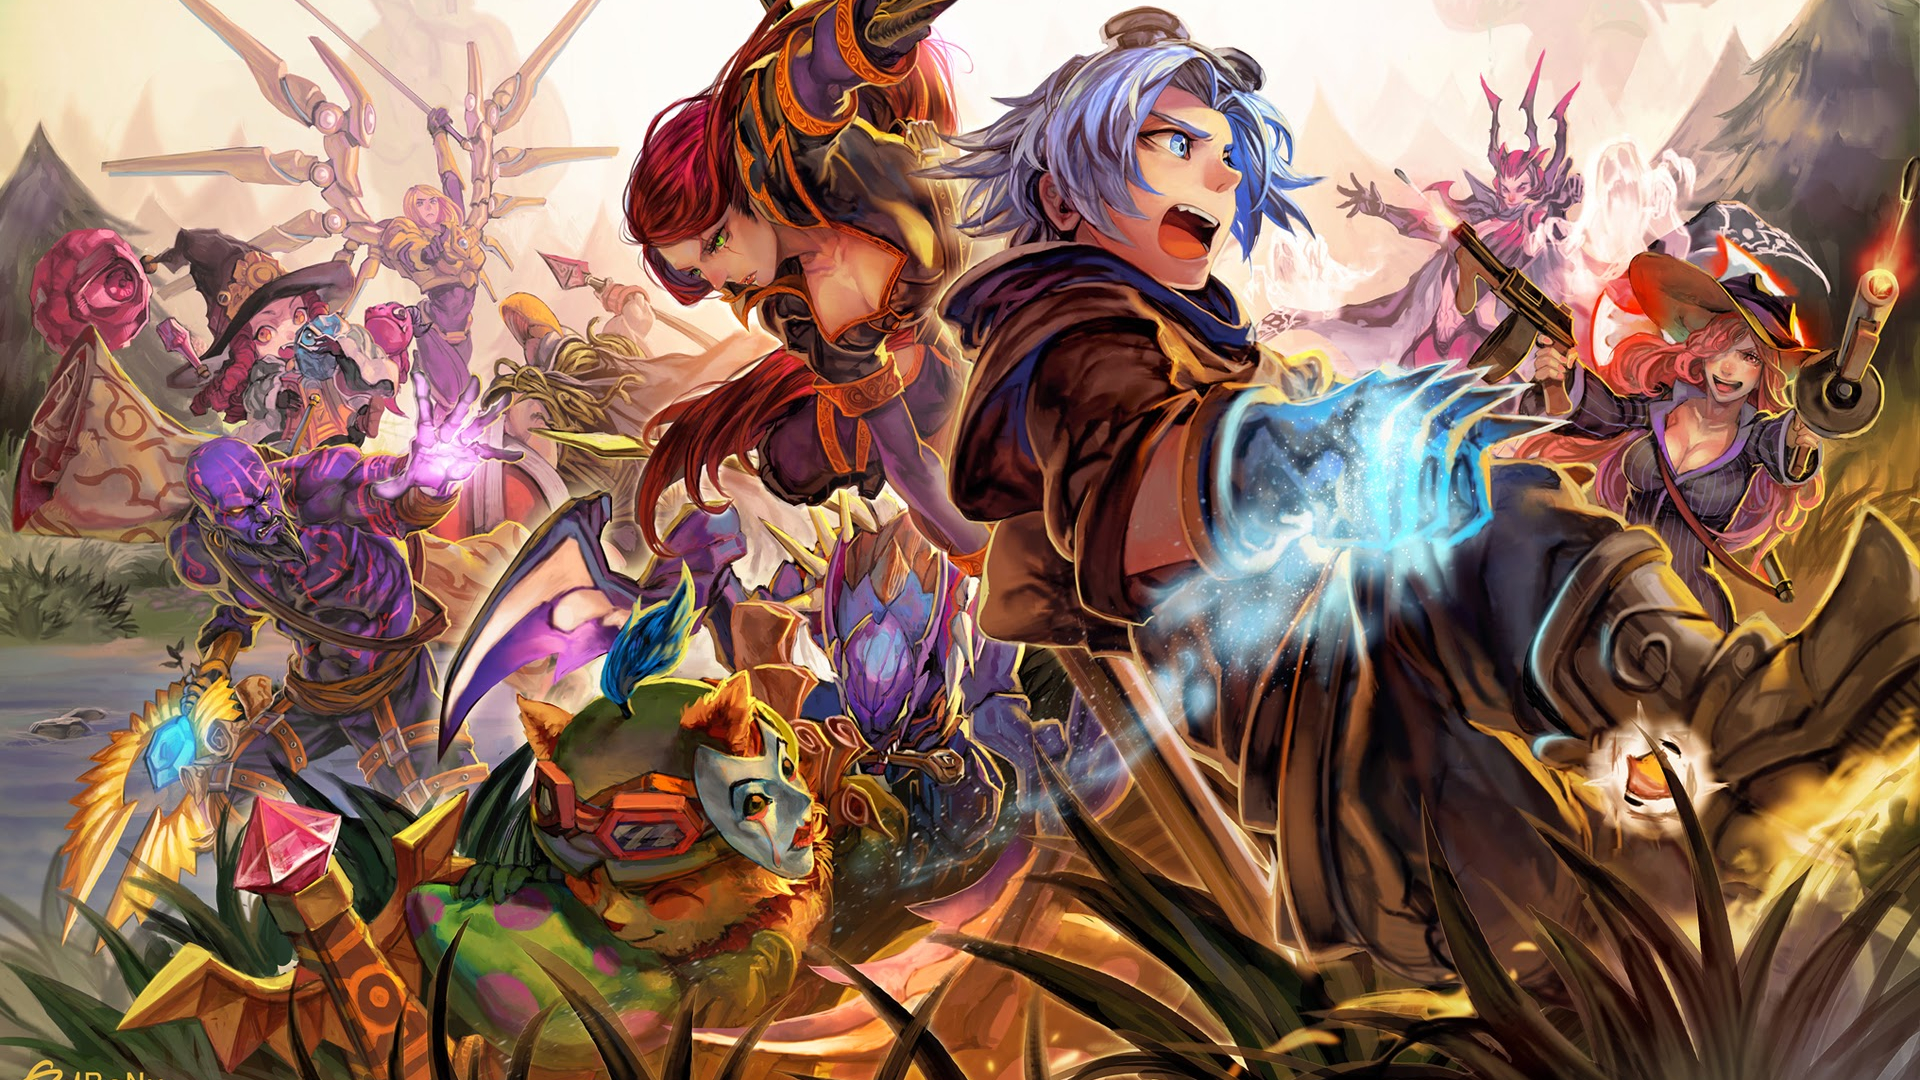 Free Download League Of Legends Anime Wallpapers 1920x1200 For